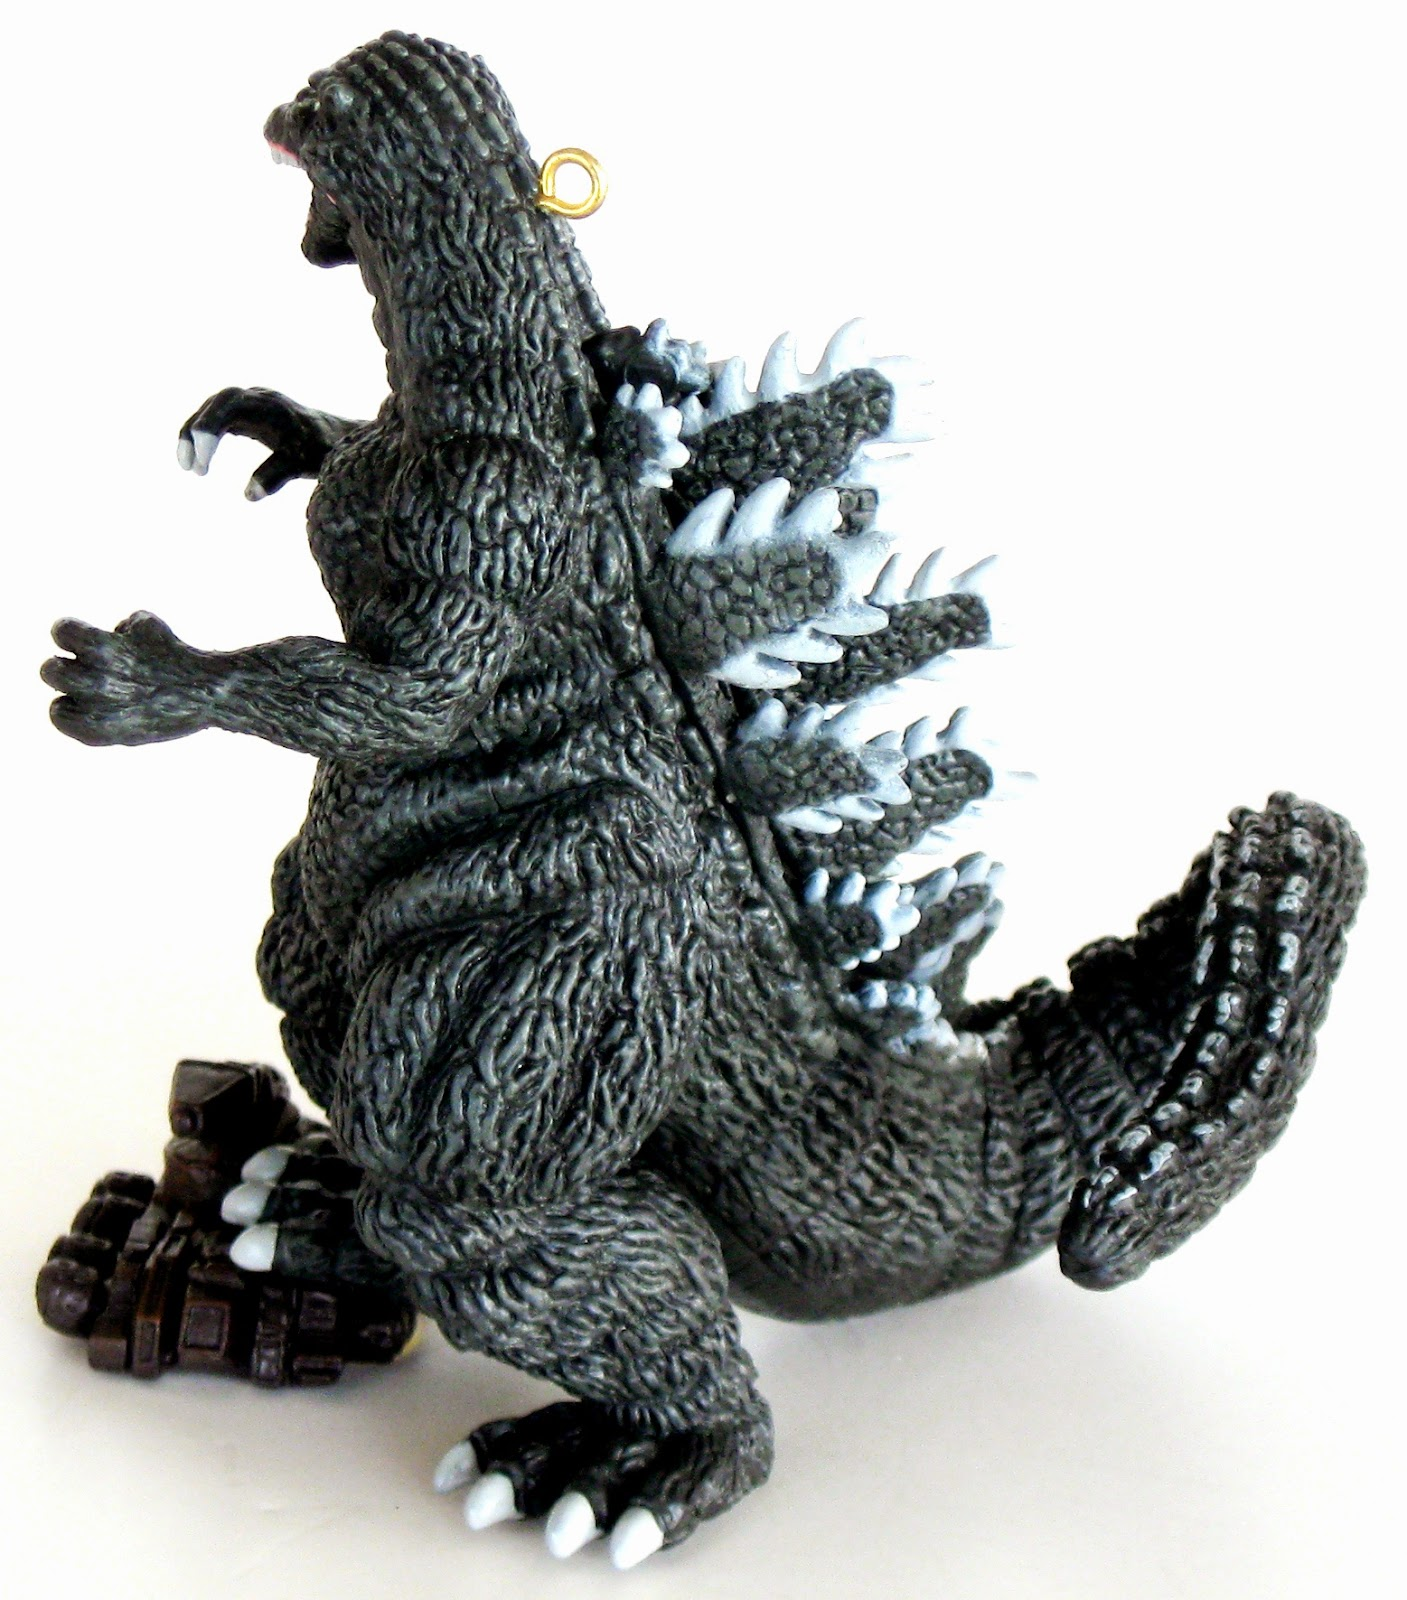 godzilla 2018 ornament - HD 1407×1600